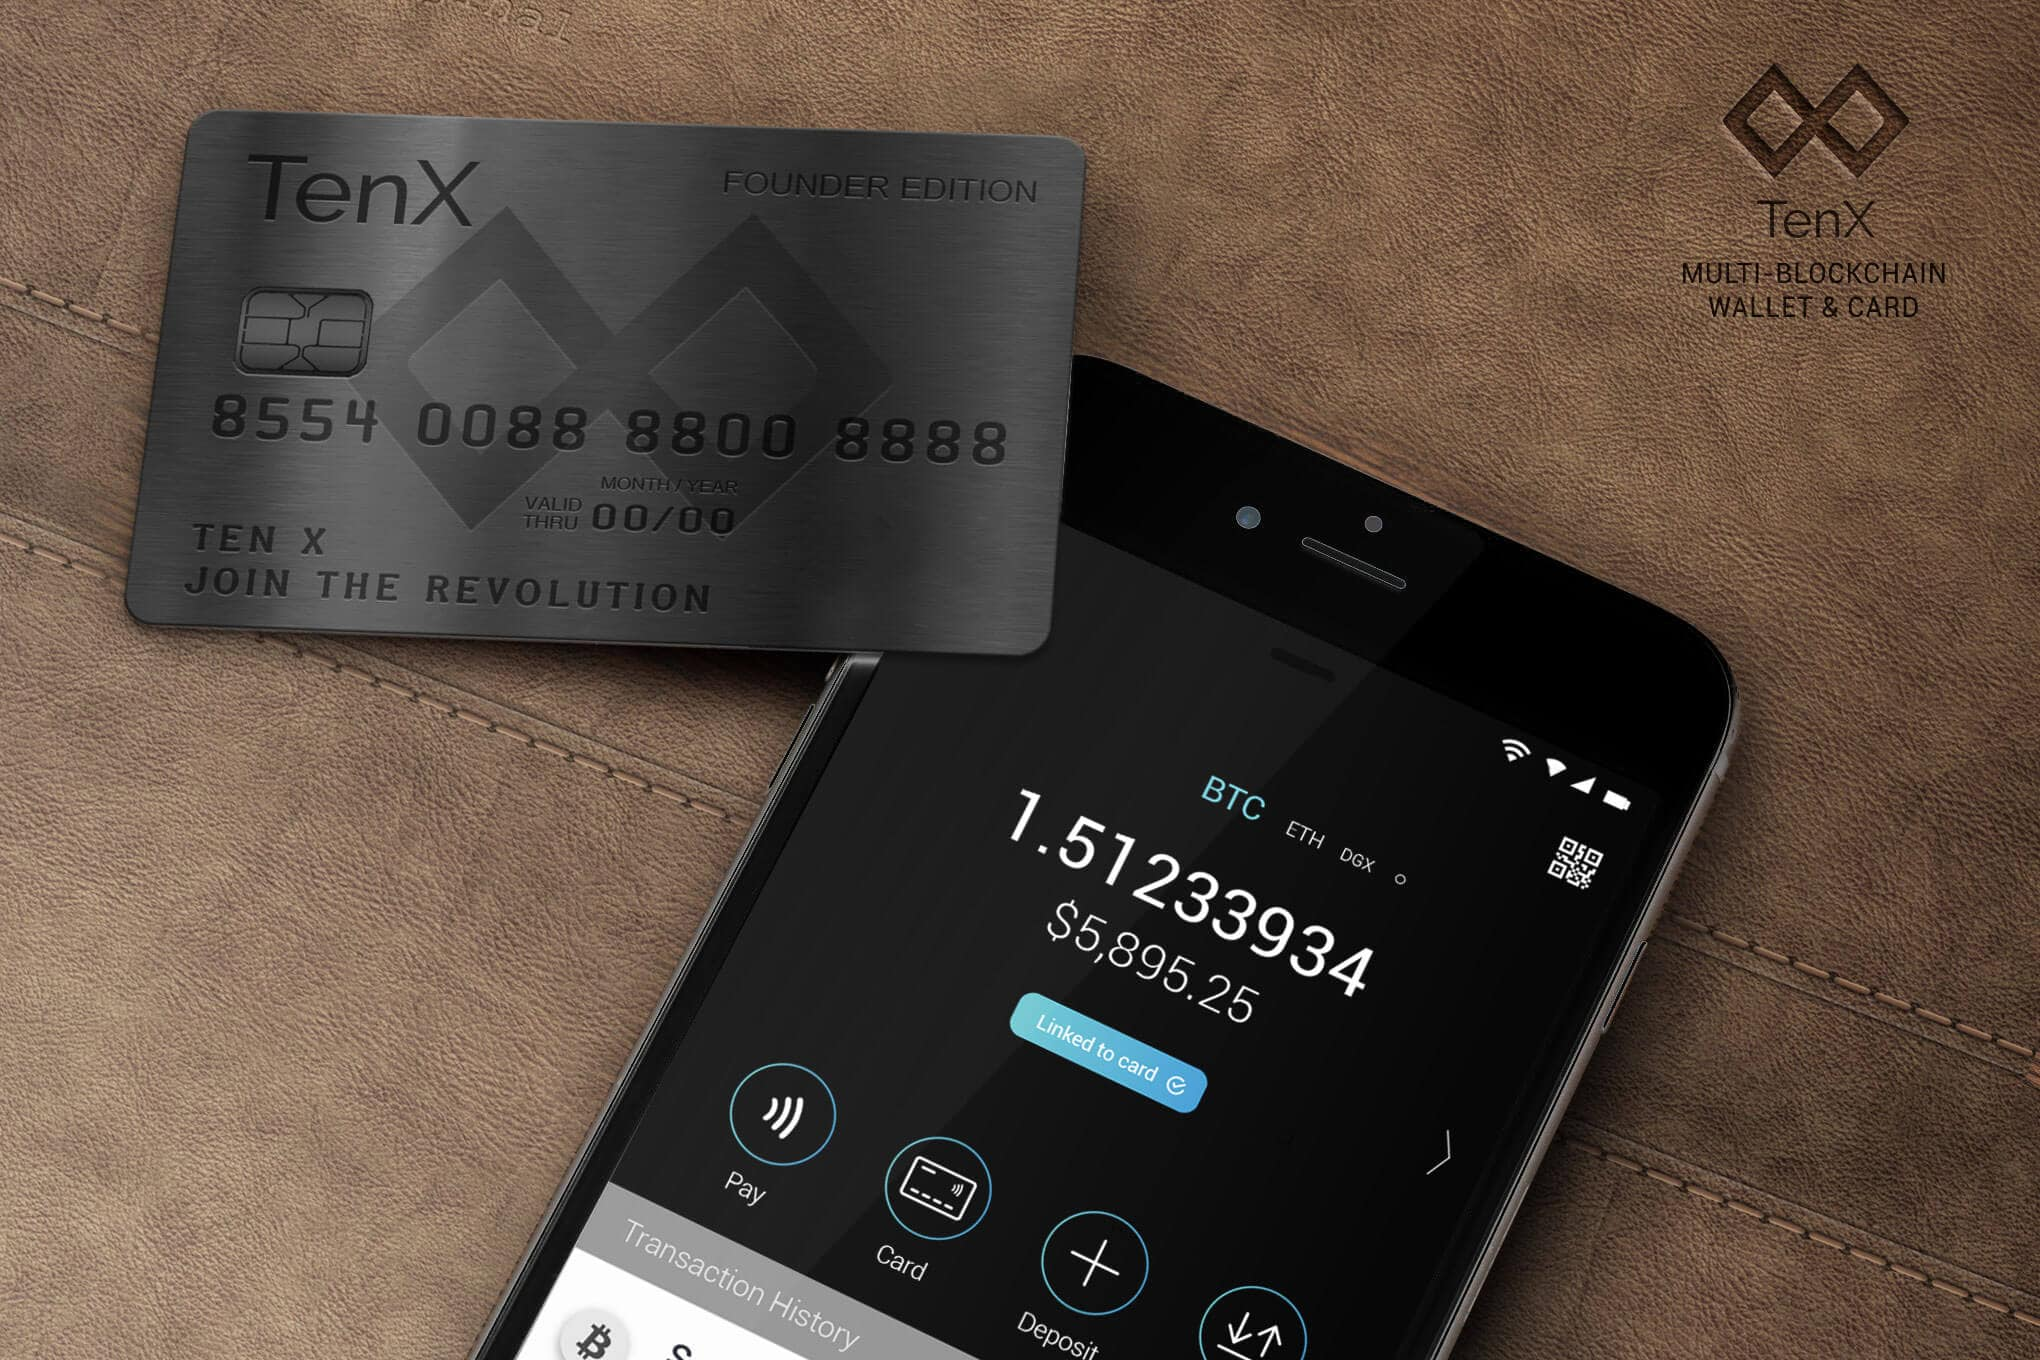 TenX, TenX: Kursanstieg bei PAY & Bank Identification Number